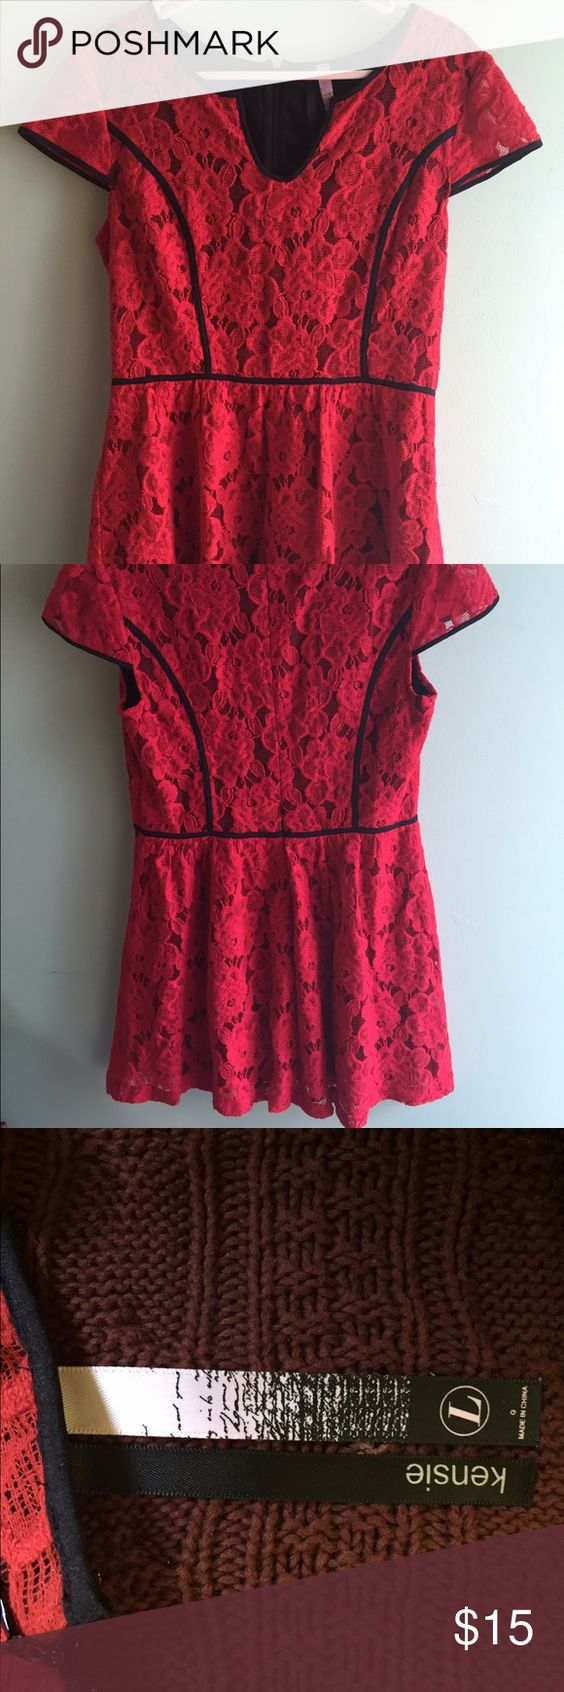 Red Lace Dress Very cute red lace dress. It is in great condition. Lmk if you have any questions. No PP. Willing to negotiate price. Kensie Dresses